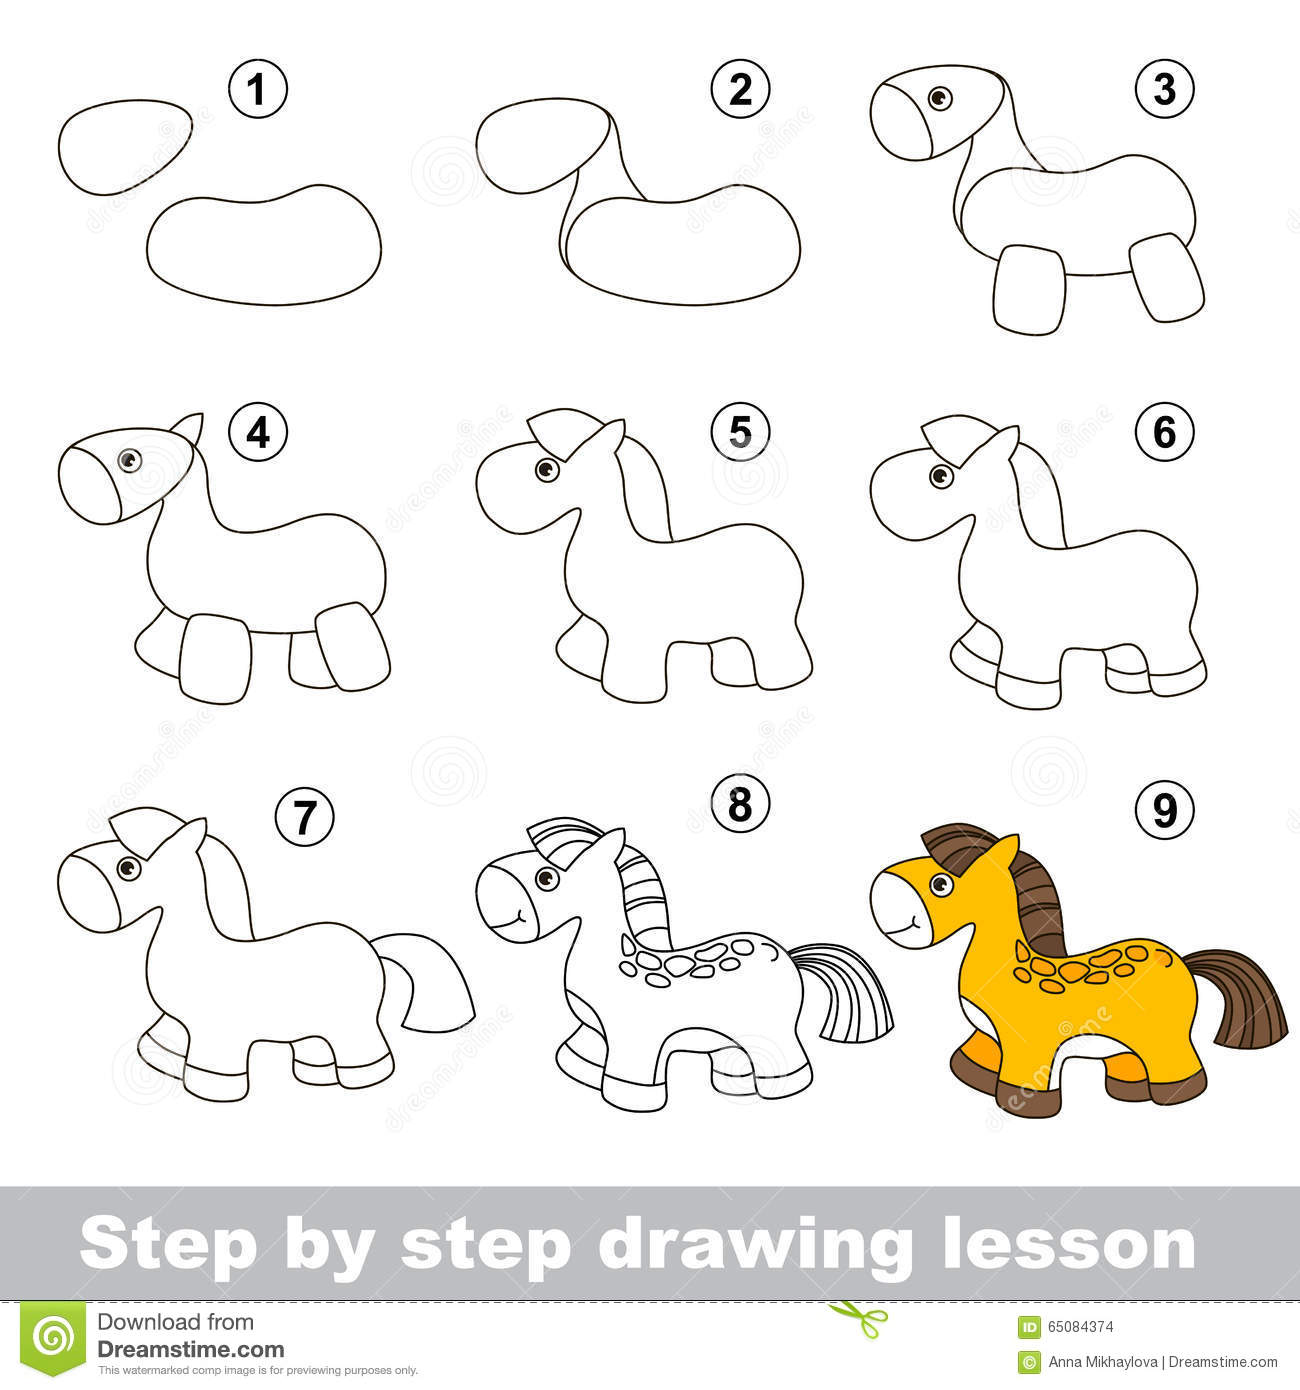 Goat Coloring Page 08 furthermore Standardbred Lineart 280212123 in addition Wolf Jump Lineart 180087871 as well How To Draw A Horse For Kids 9 Easy Steps in addition Horse Outline Printable For Kids. on cute cartoon horses